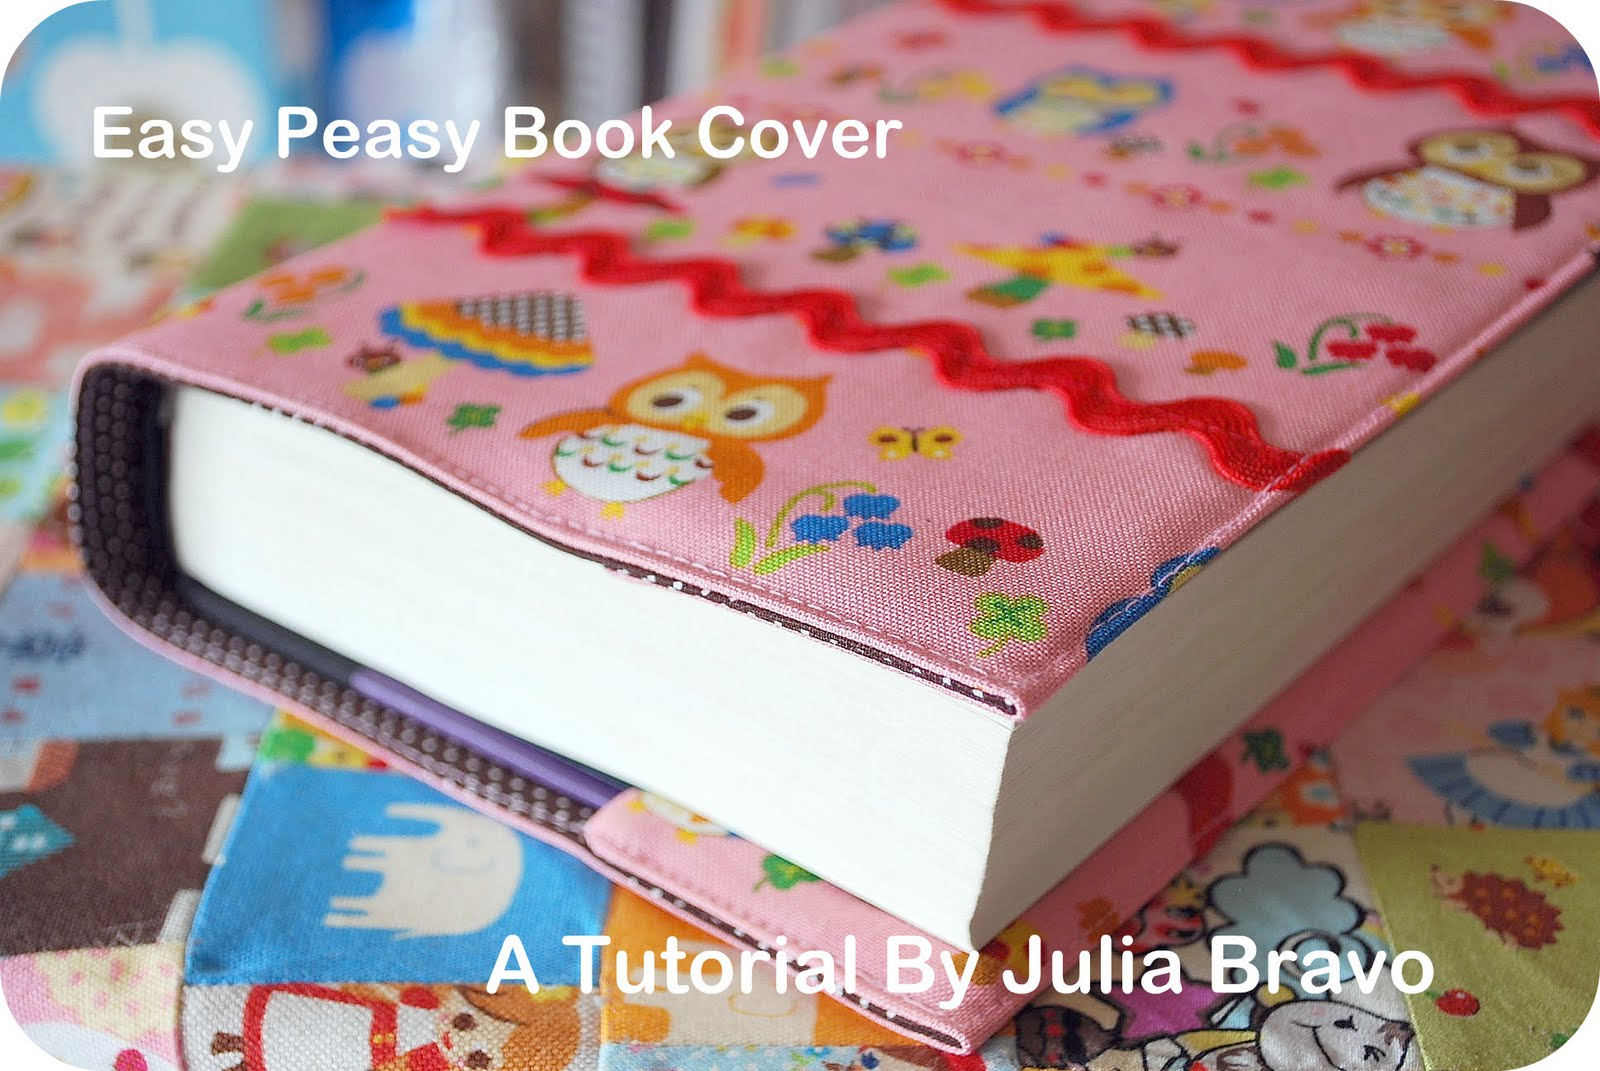 Diy Fabric Book Cover ~ Stitches book cover tutorial image heavy